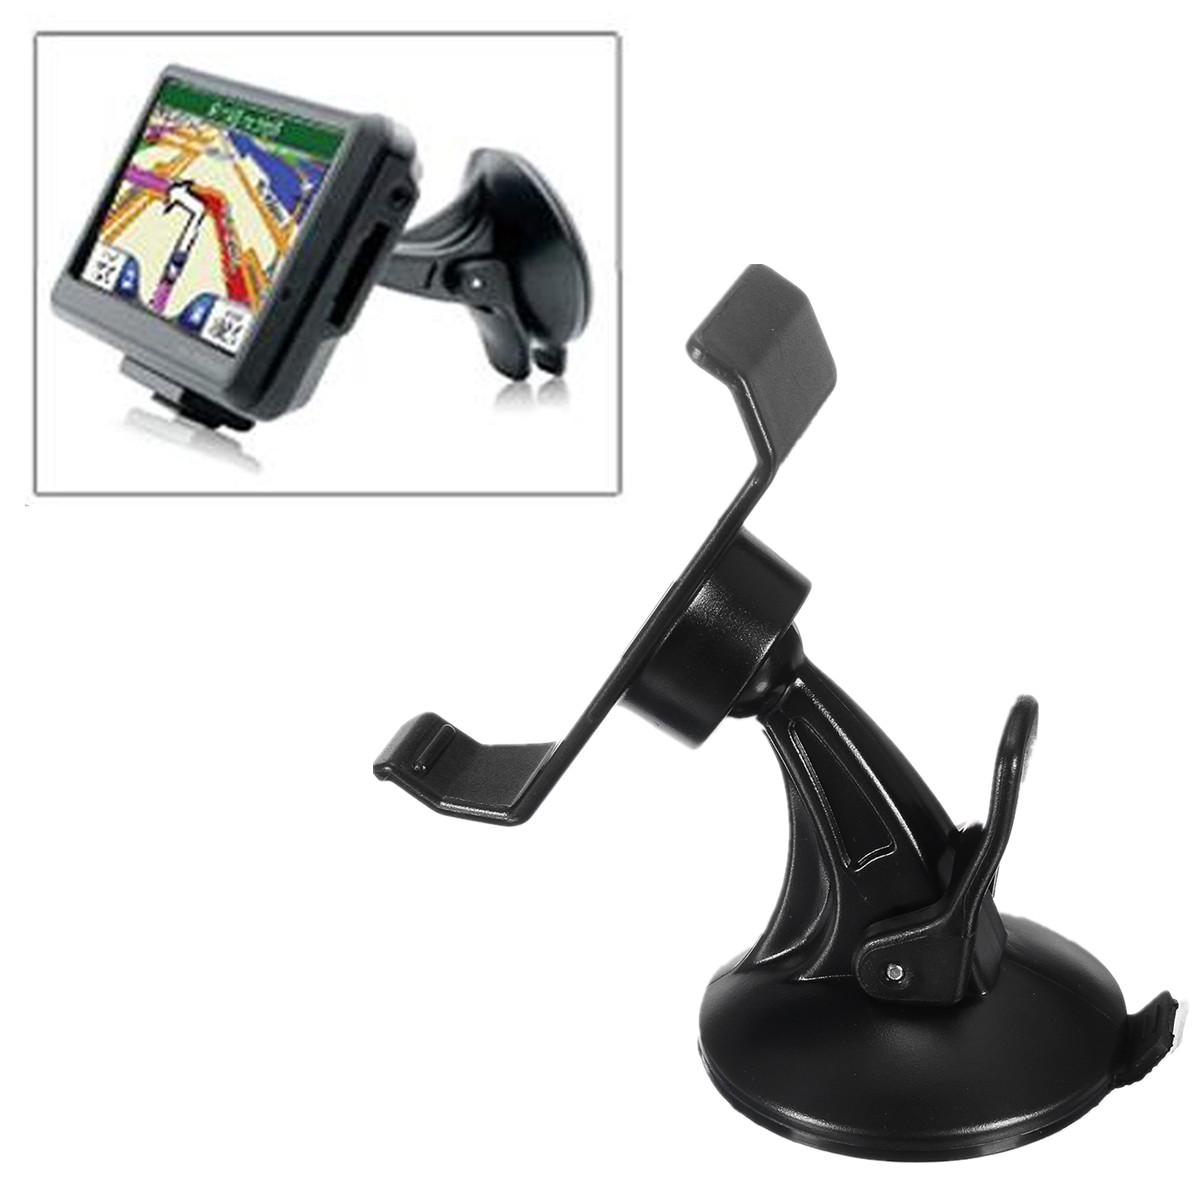 Universal Car Wind Shield Suction Cup Mount Holder Bracket Stand for Garmin GPS Navigator